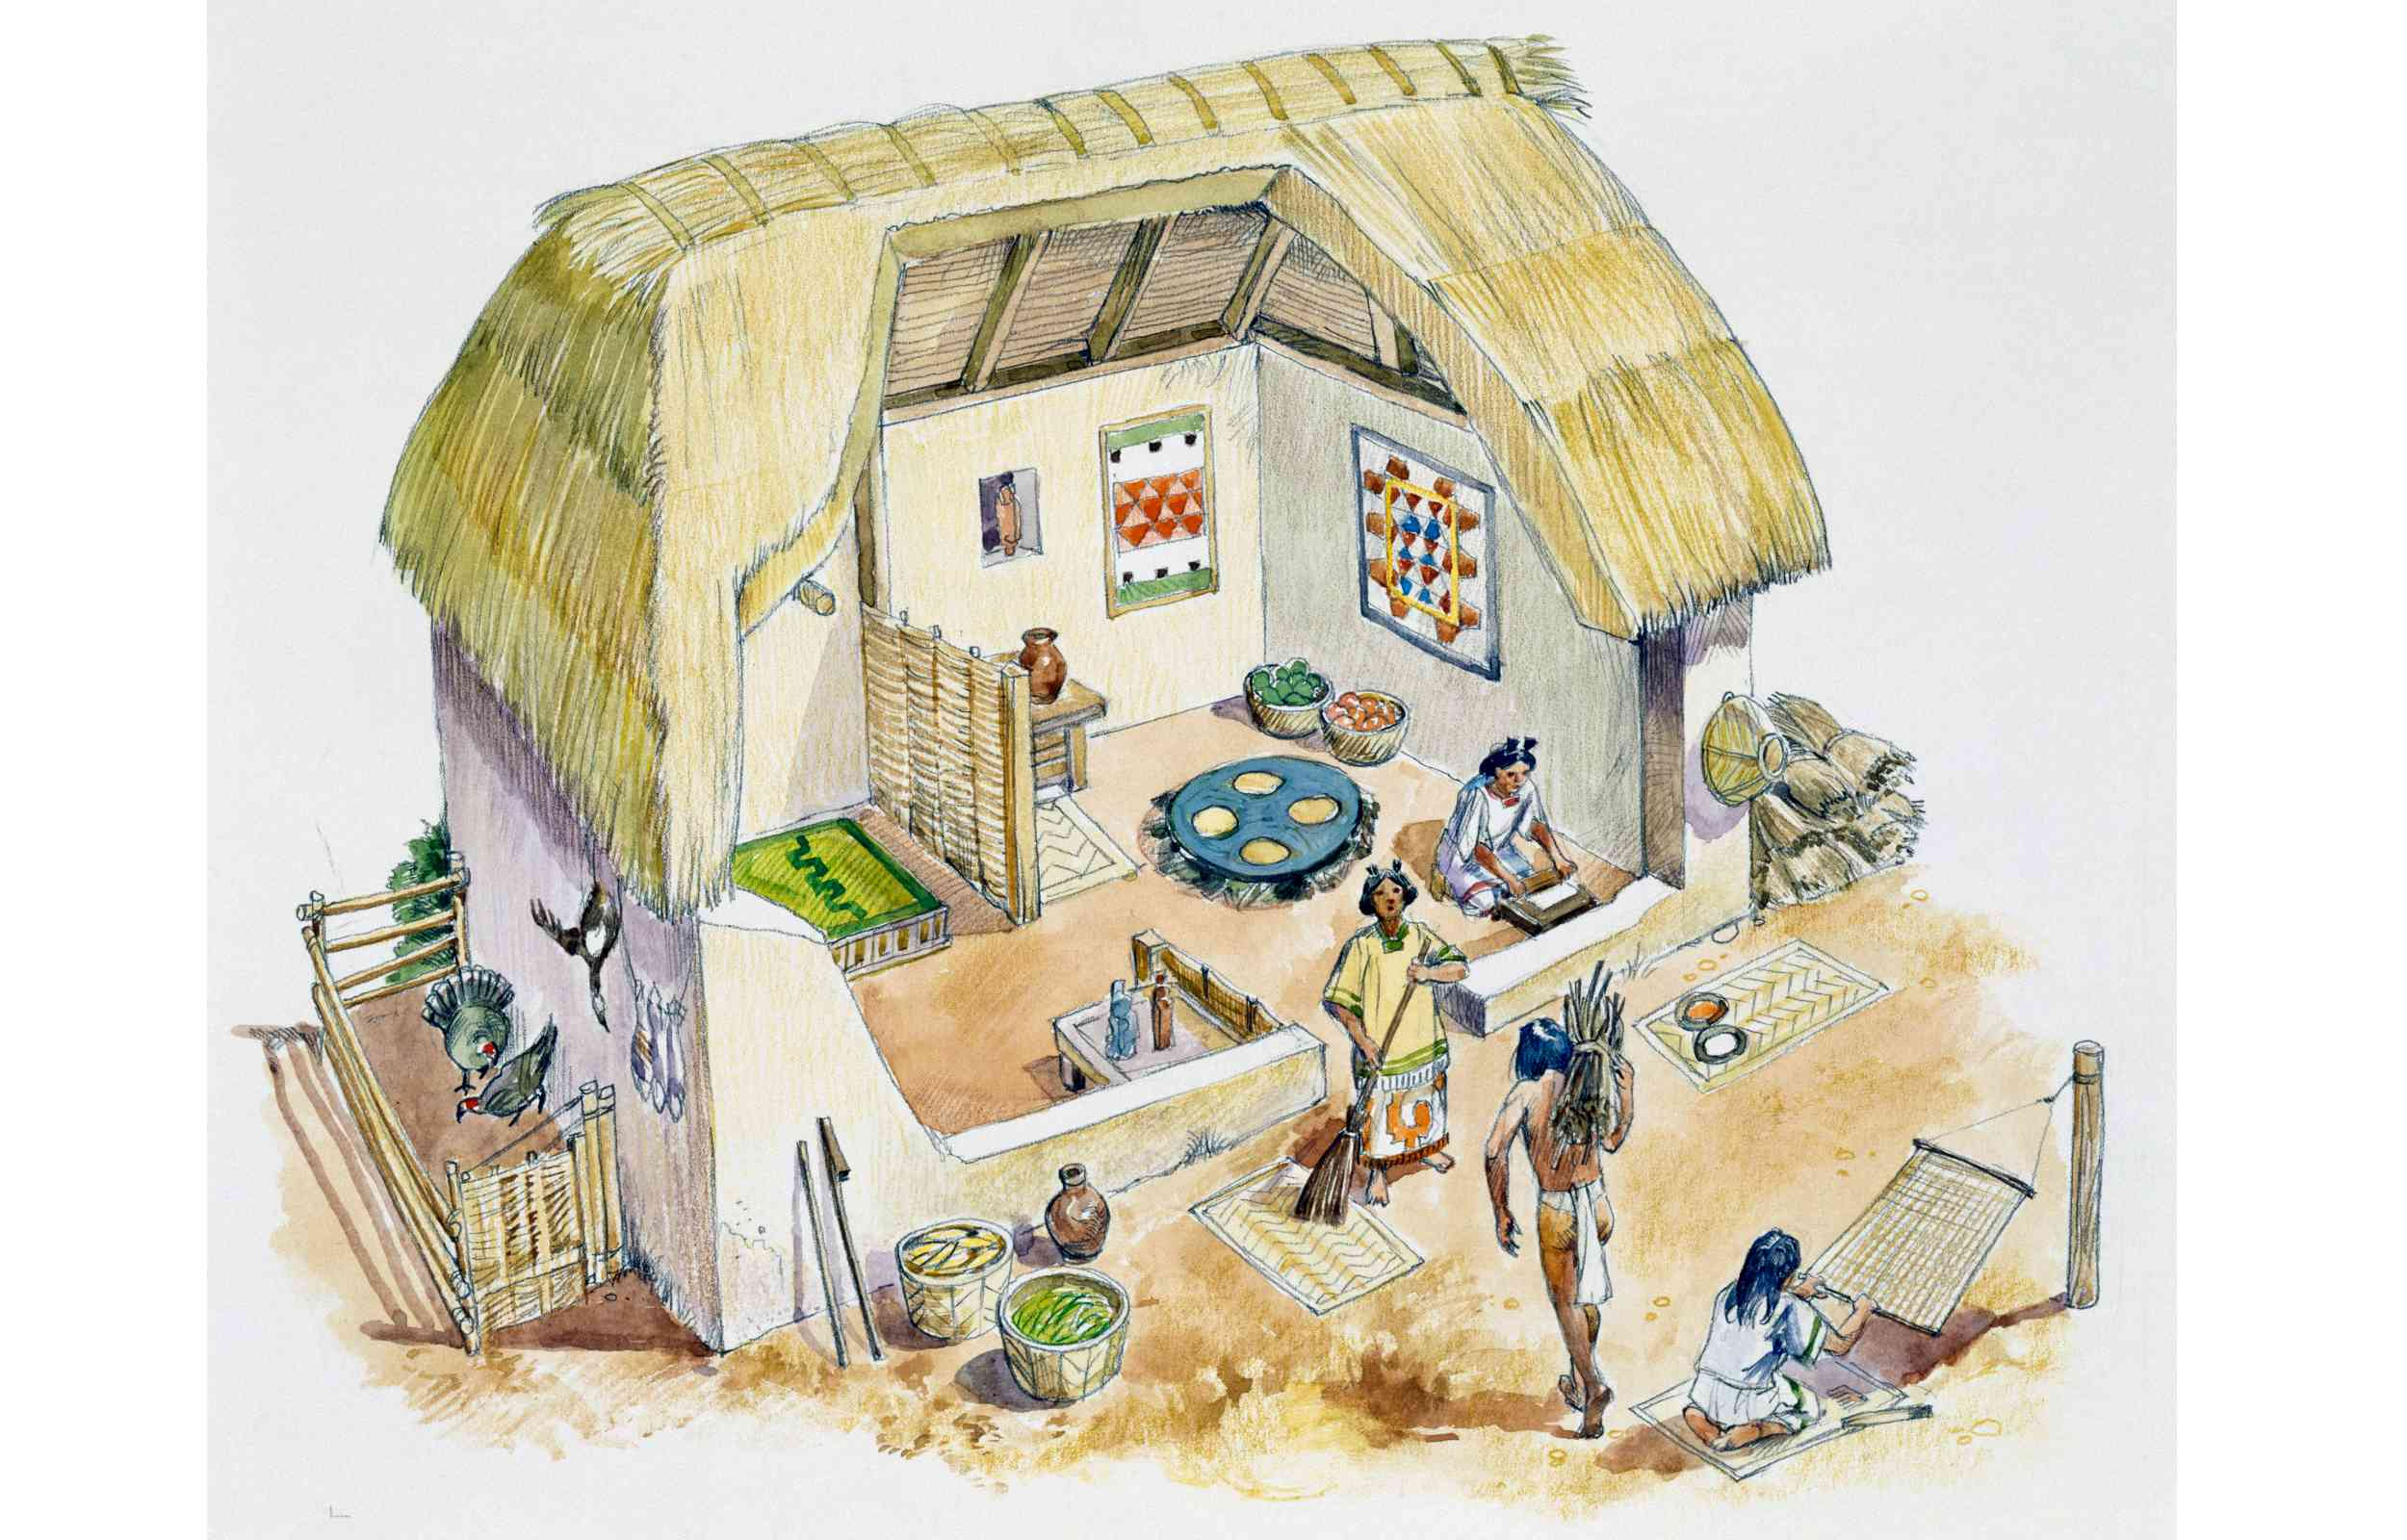 Aztec country house built with mud bricks and roof made from leaves or reeds, drawing, Aztec, 14th-16th century